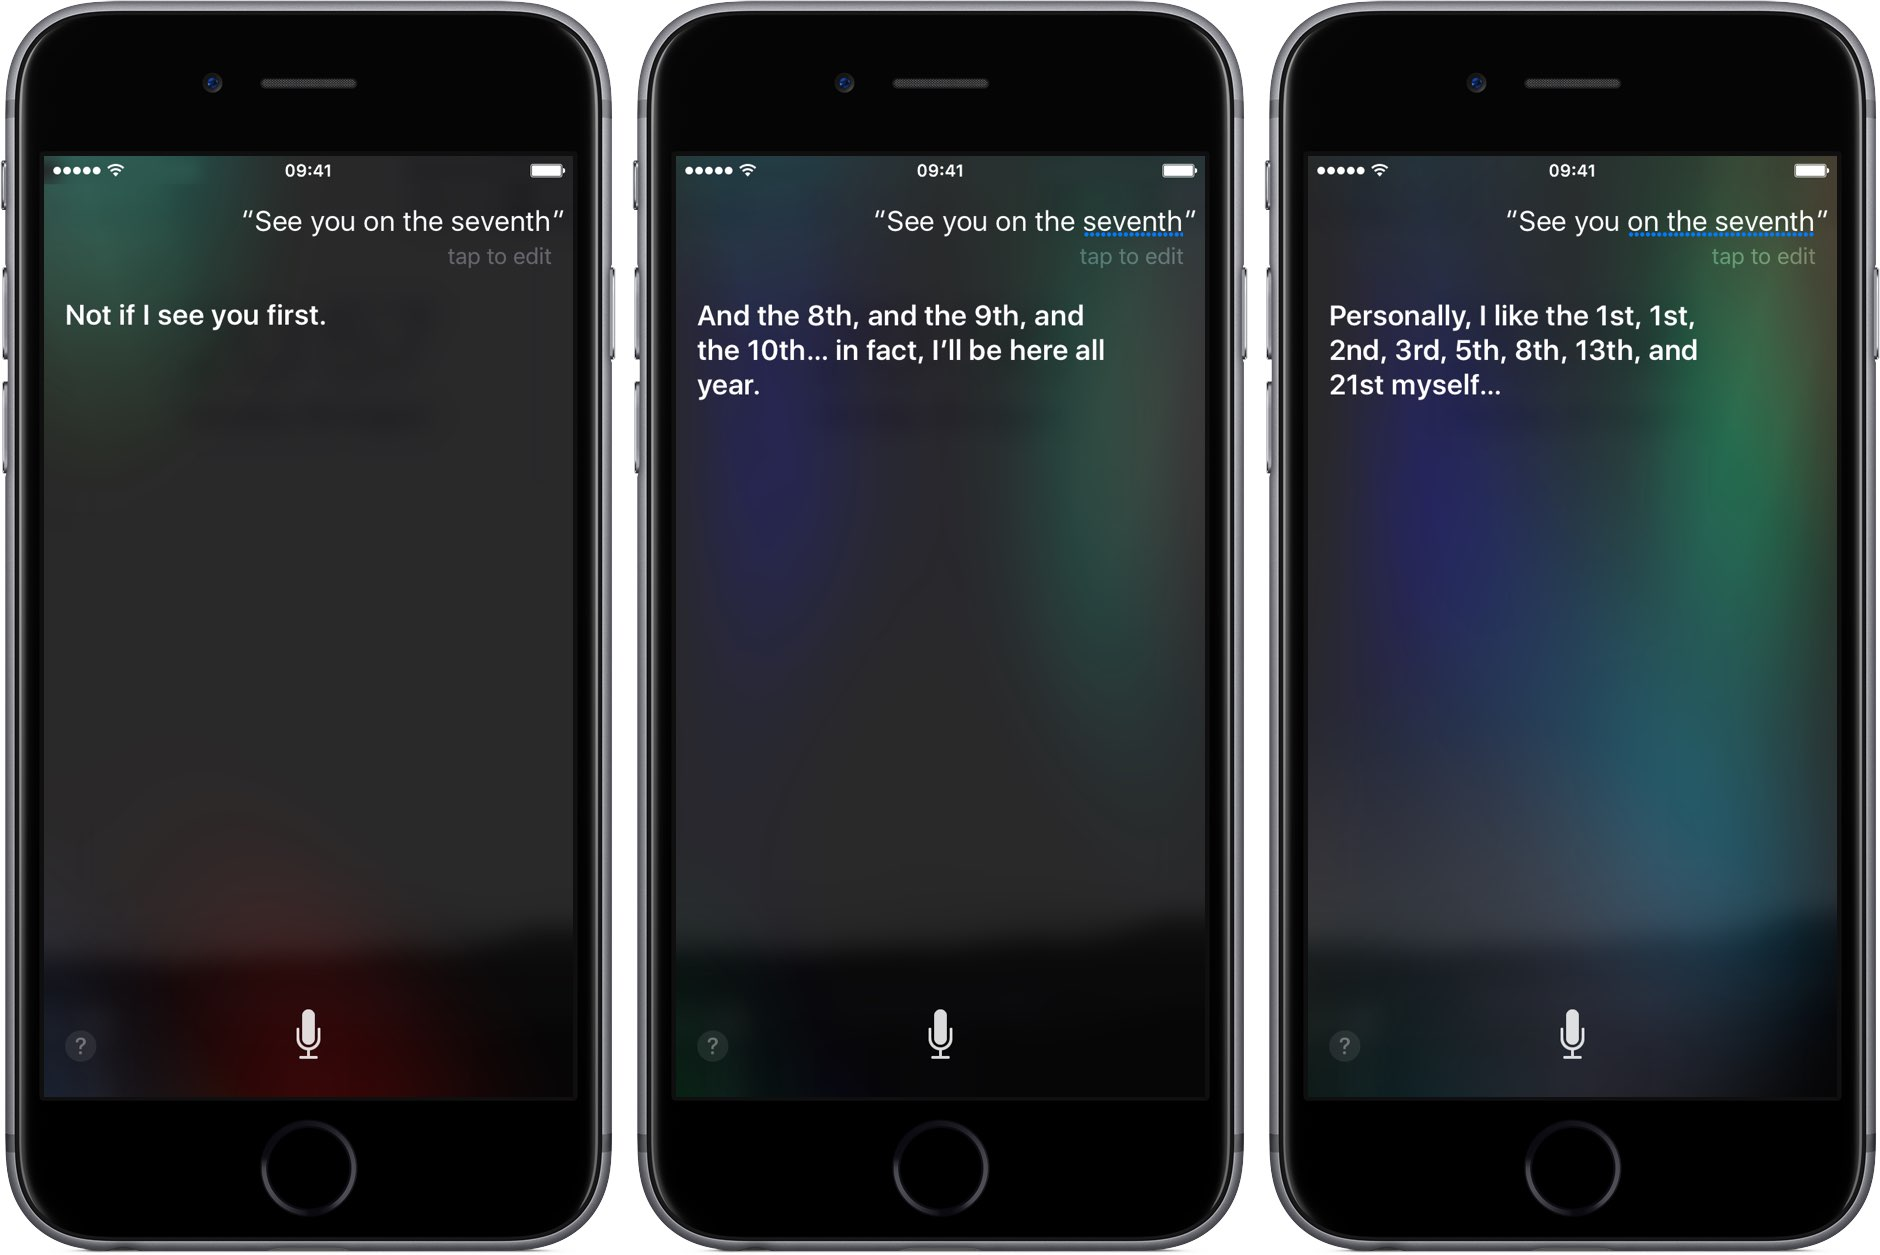 Siri-iPhone-7-event-responses-space-gray-iPhone-screenshot-001